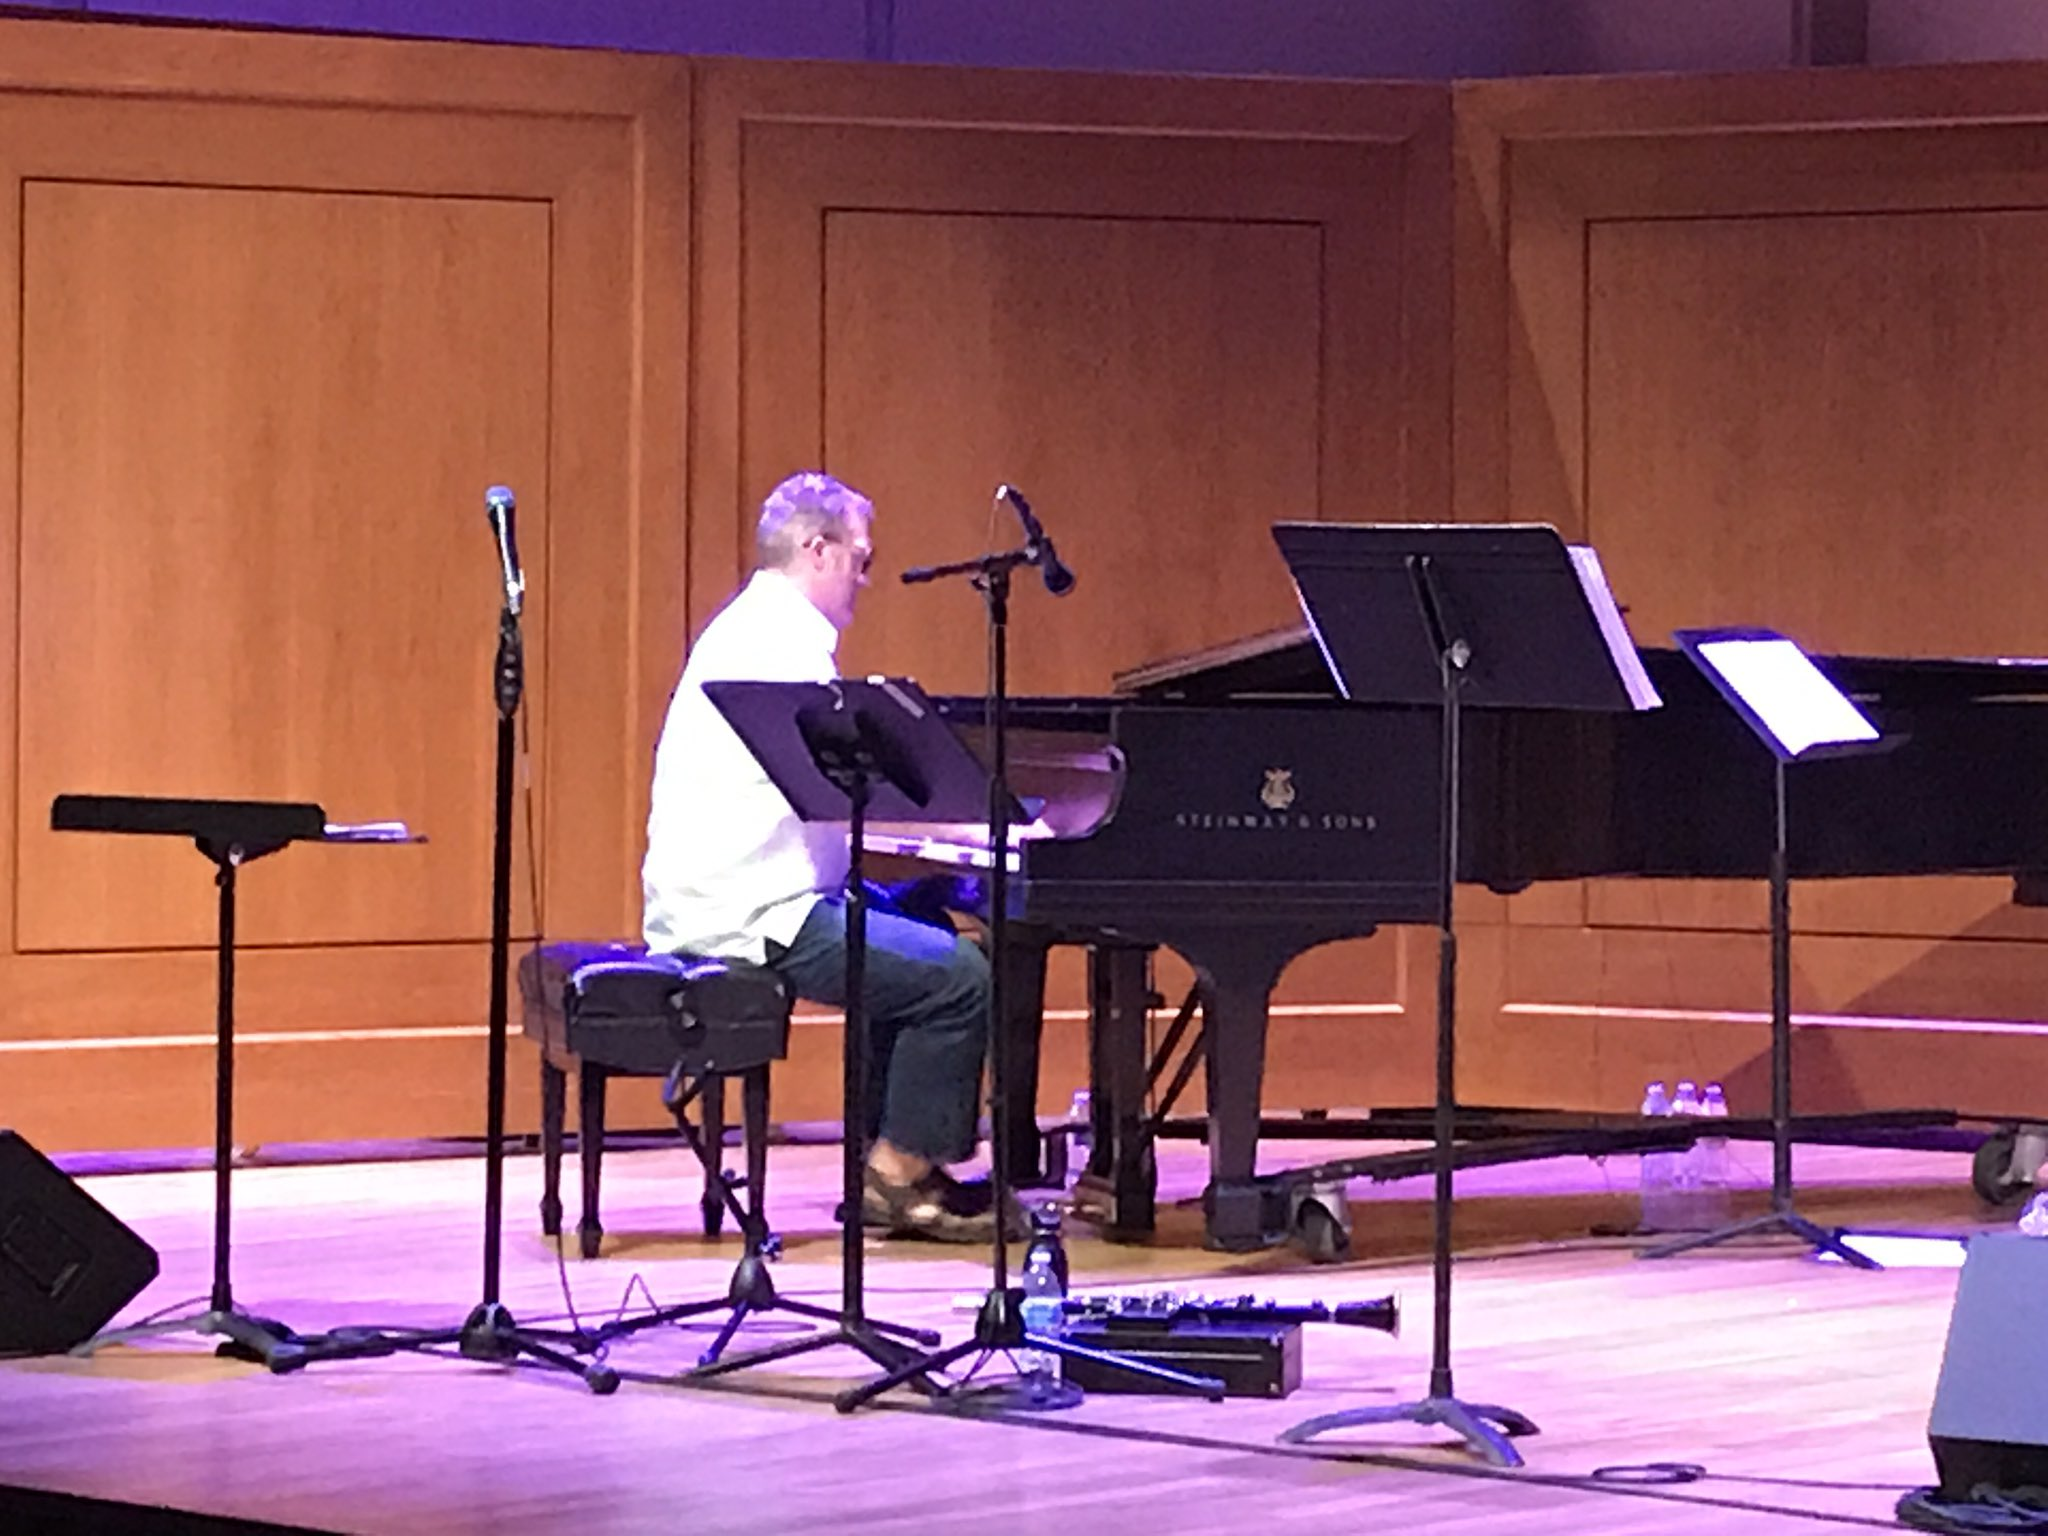 Anderson's 4th gig in as many nights, more gigs in next in few days, and he runs the UNC Jazz Workshop all week. Man does not stop #UNCjazz https://t.co/BhqFzcdJU0